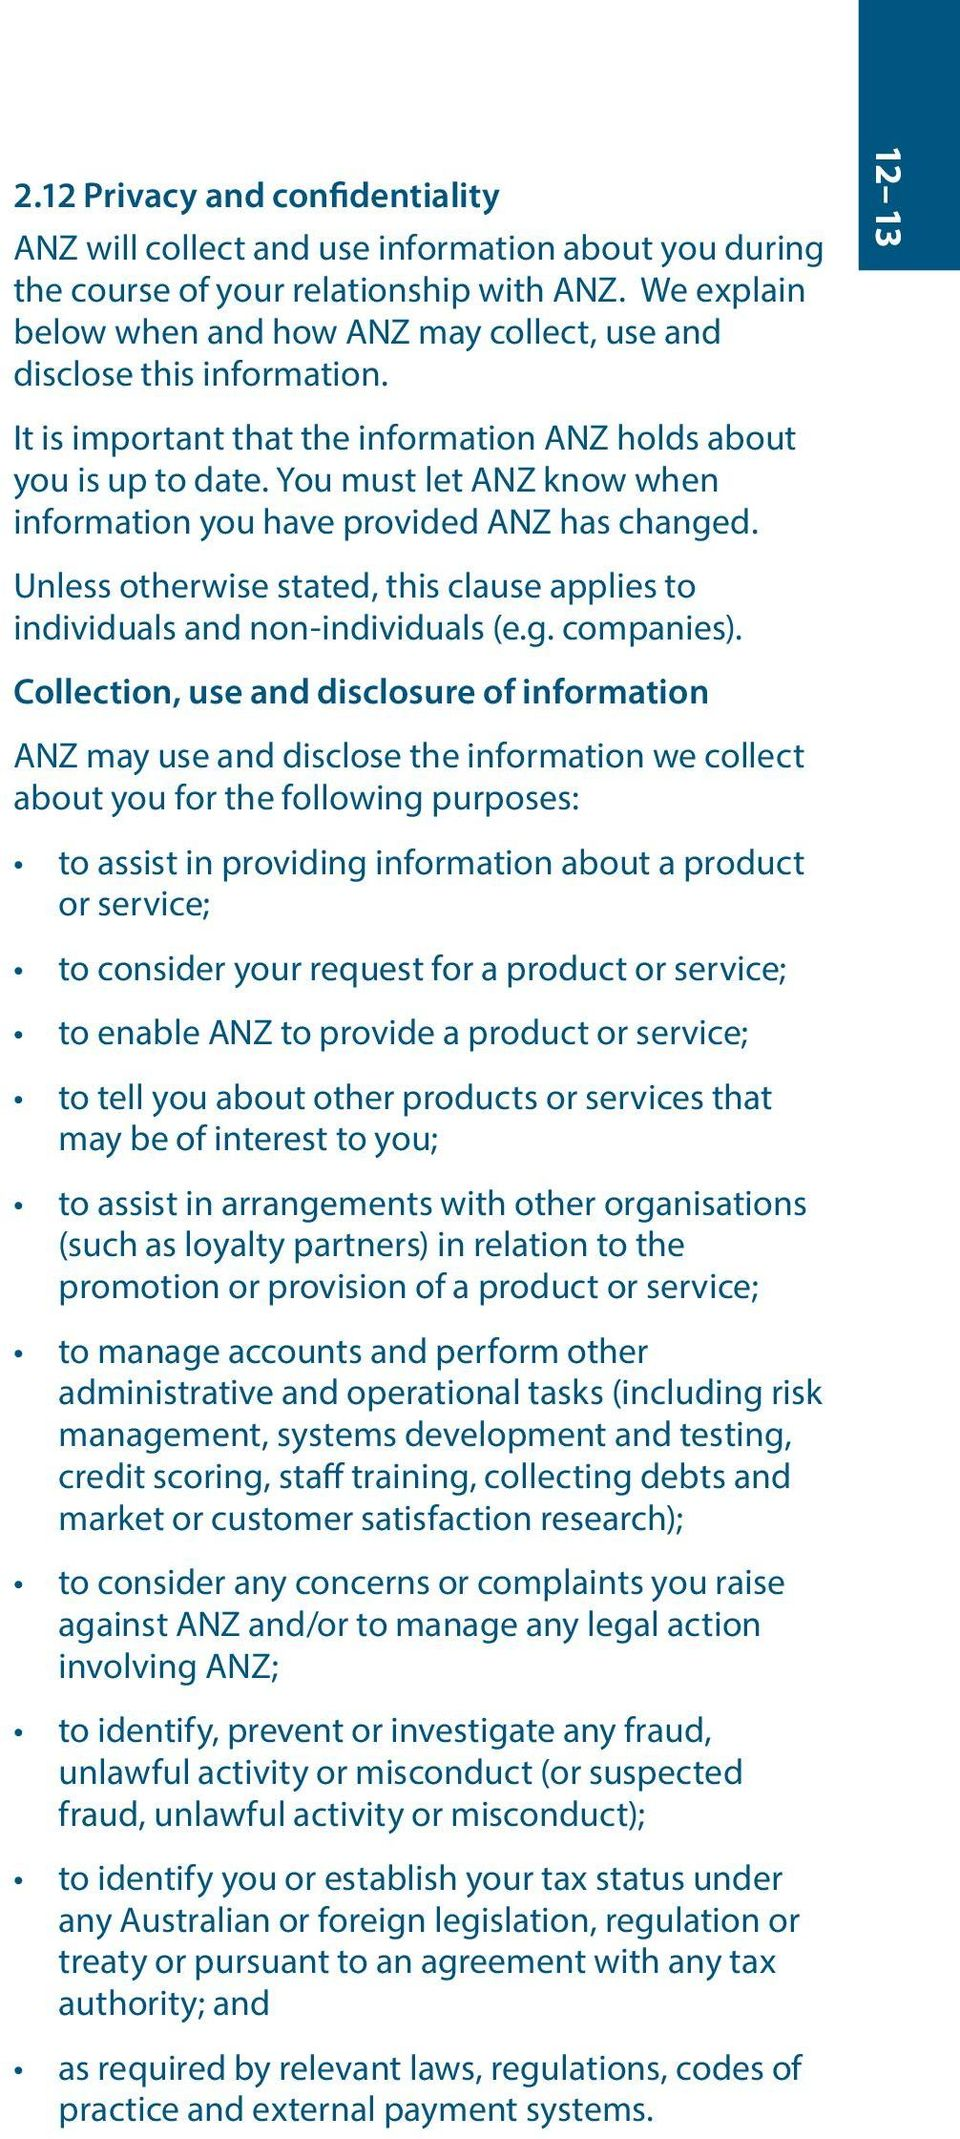 You must let ANZ know when information you have provided ANZ has changed. Unless otherwise stated, this clause applies to individuals and non-individuals (e.g. companies).